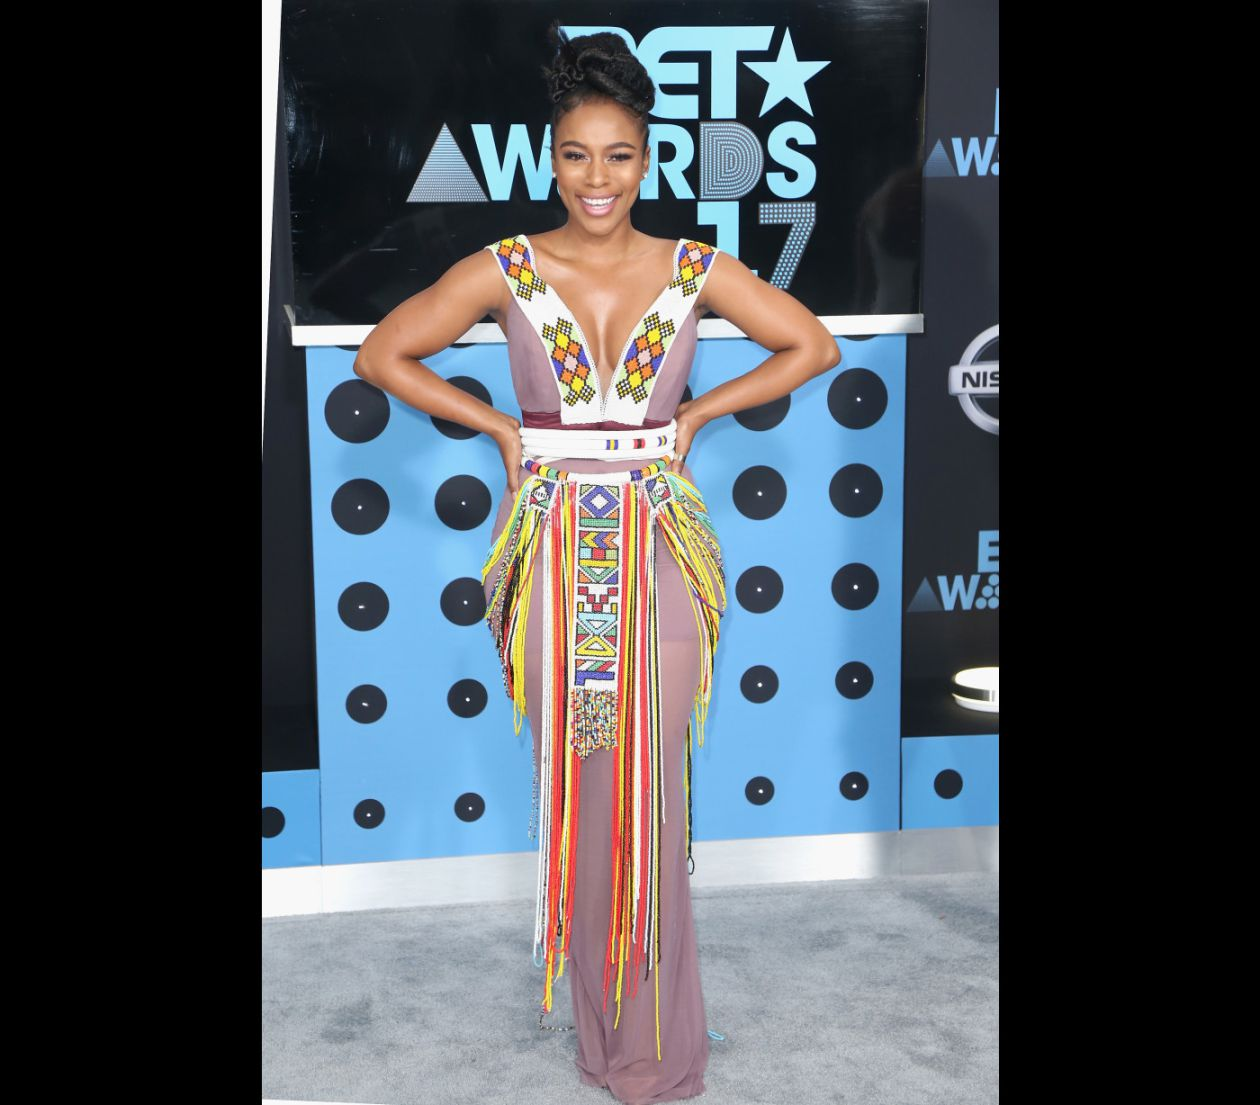 Most beautiful African actress - Top 15 Hottest African Actresses